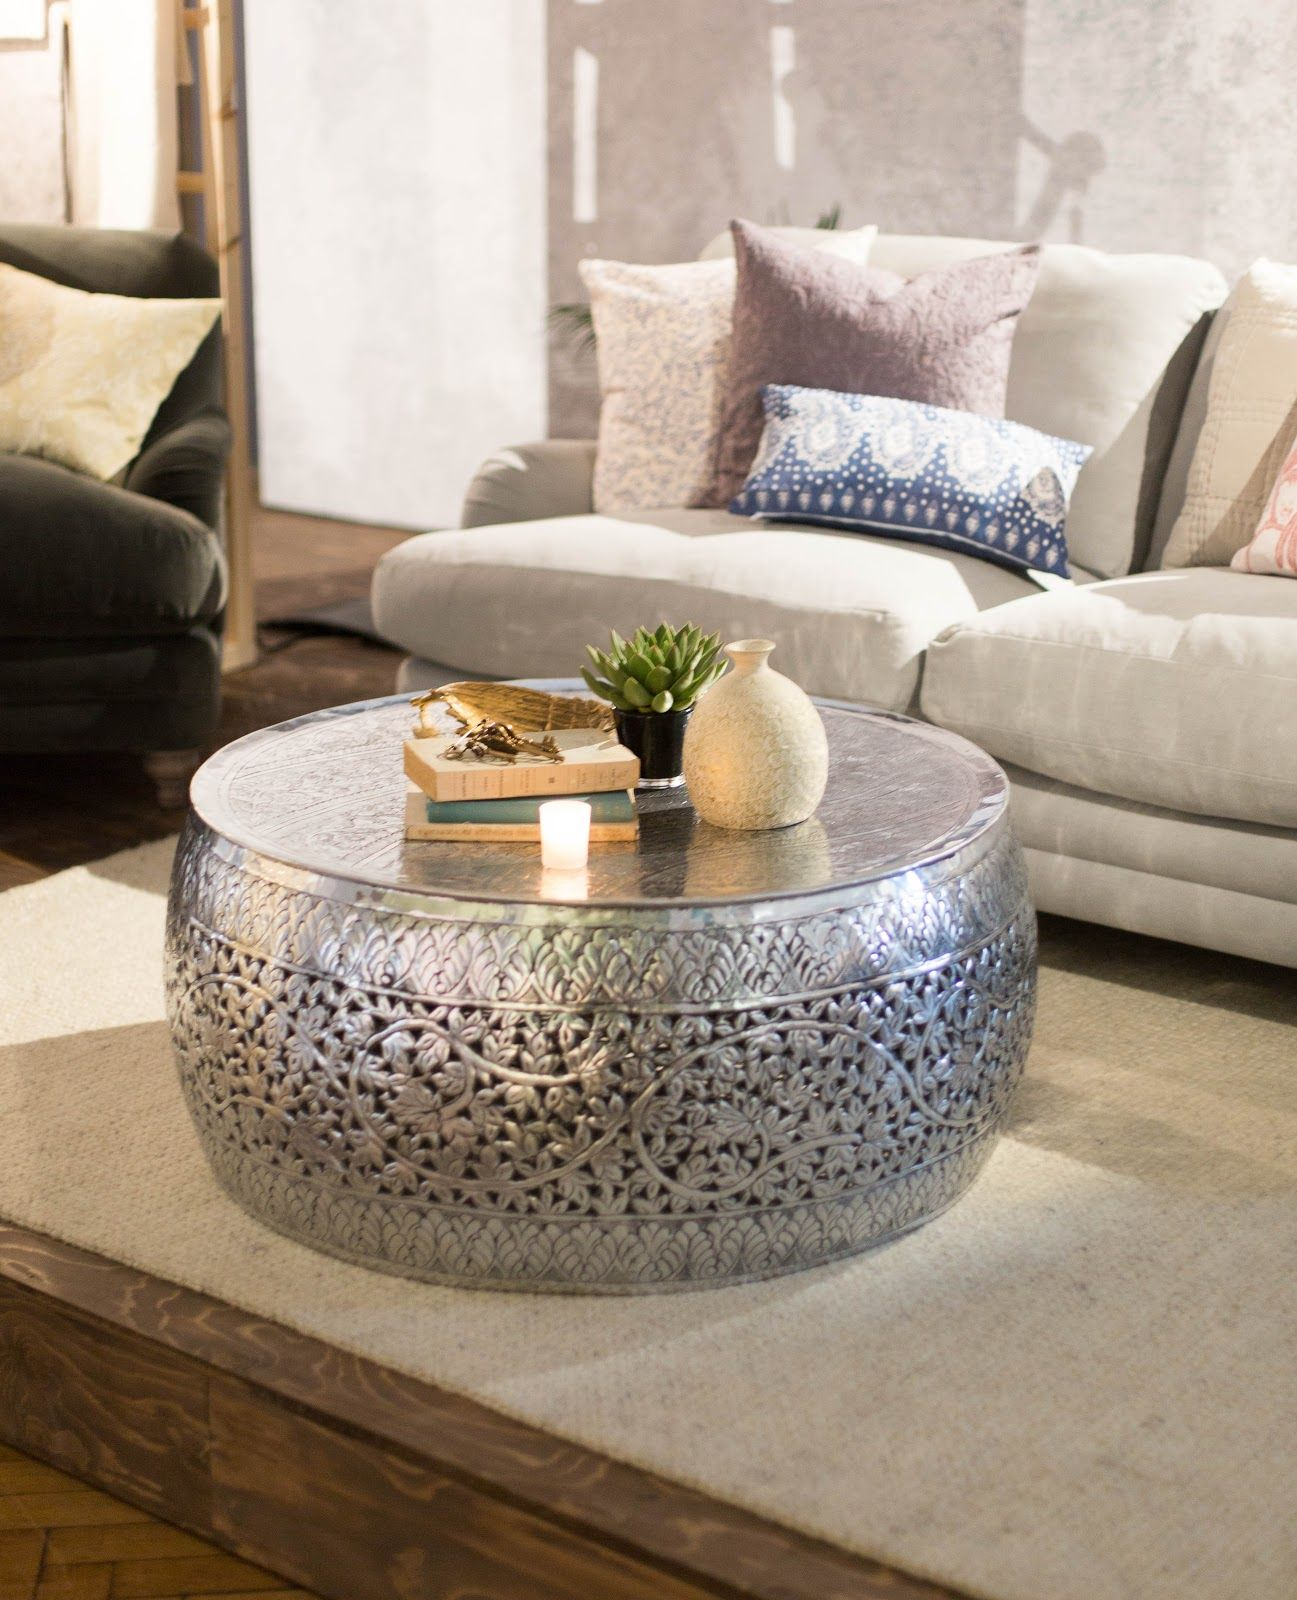 House Of Fraser Dining Room Furniture Magnificent Drum Metal Coffee Table From House Of Frasermetal Coffee Table 2018